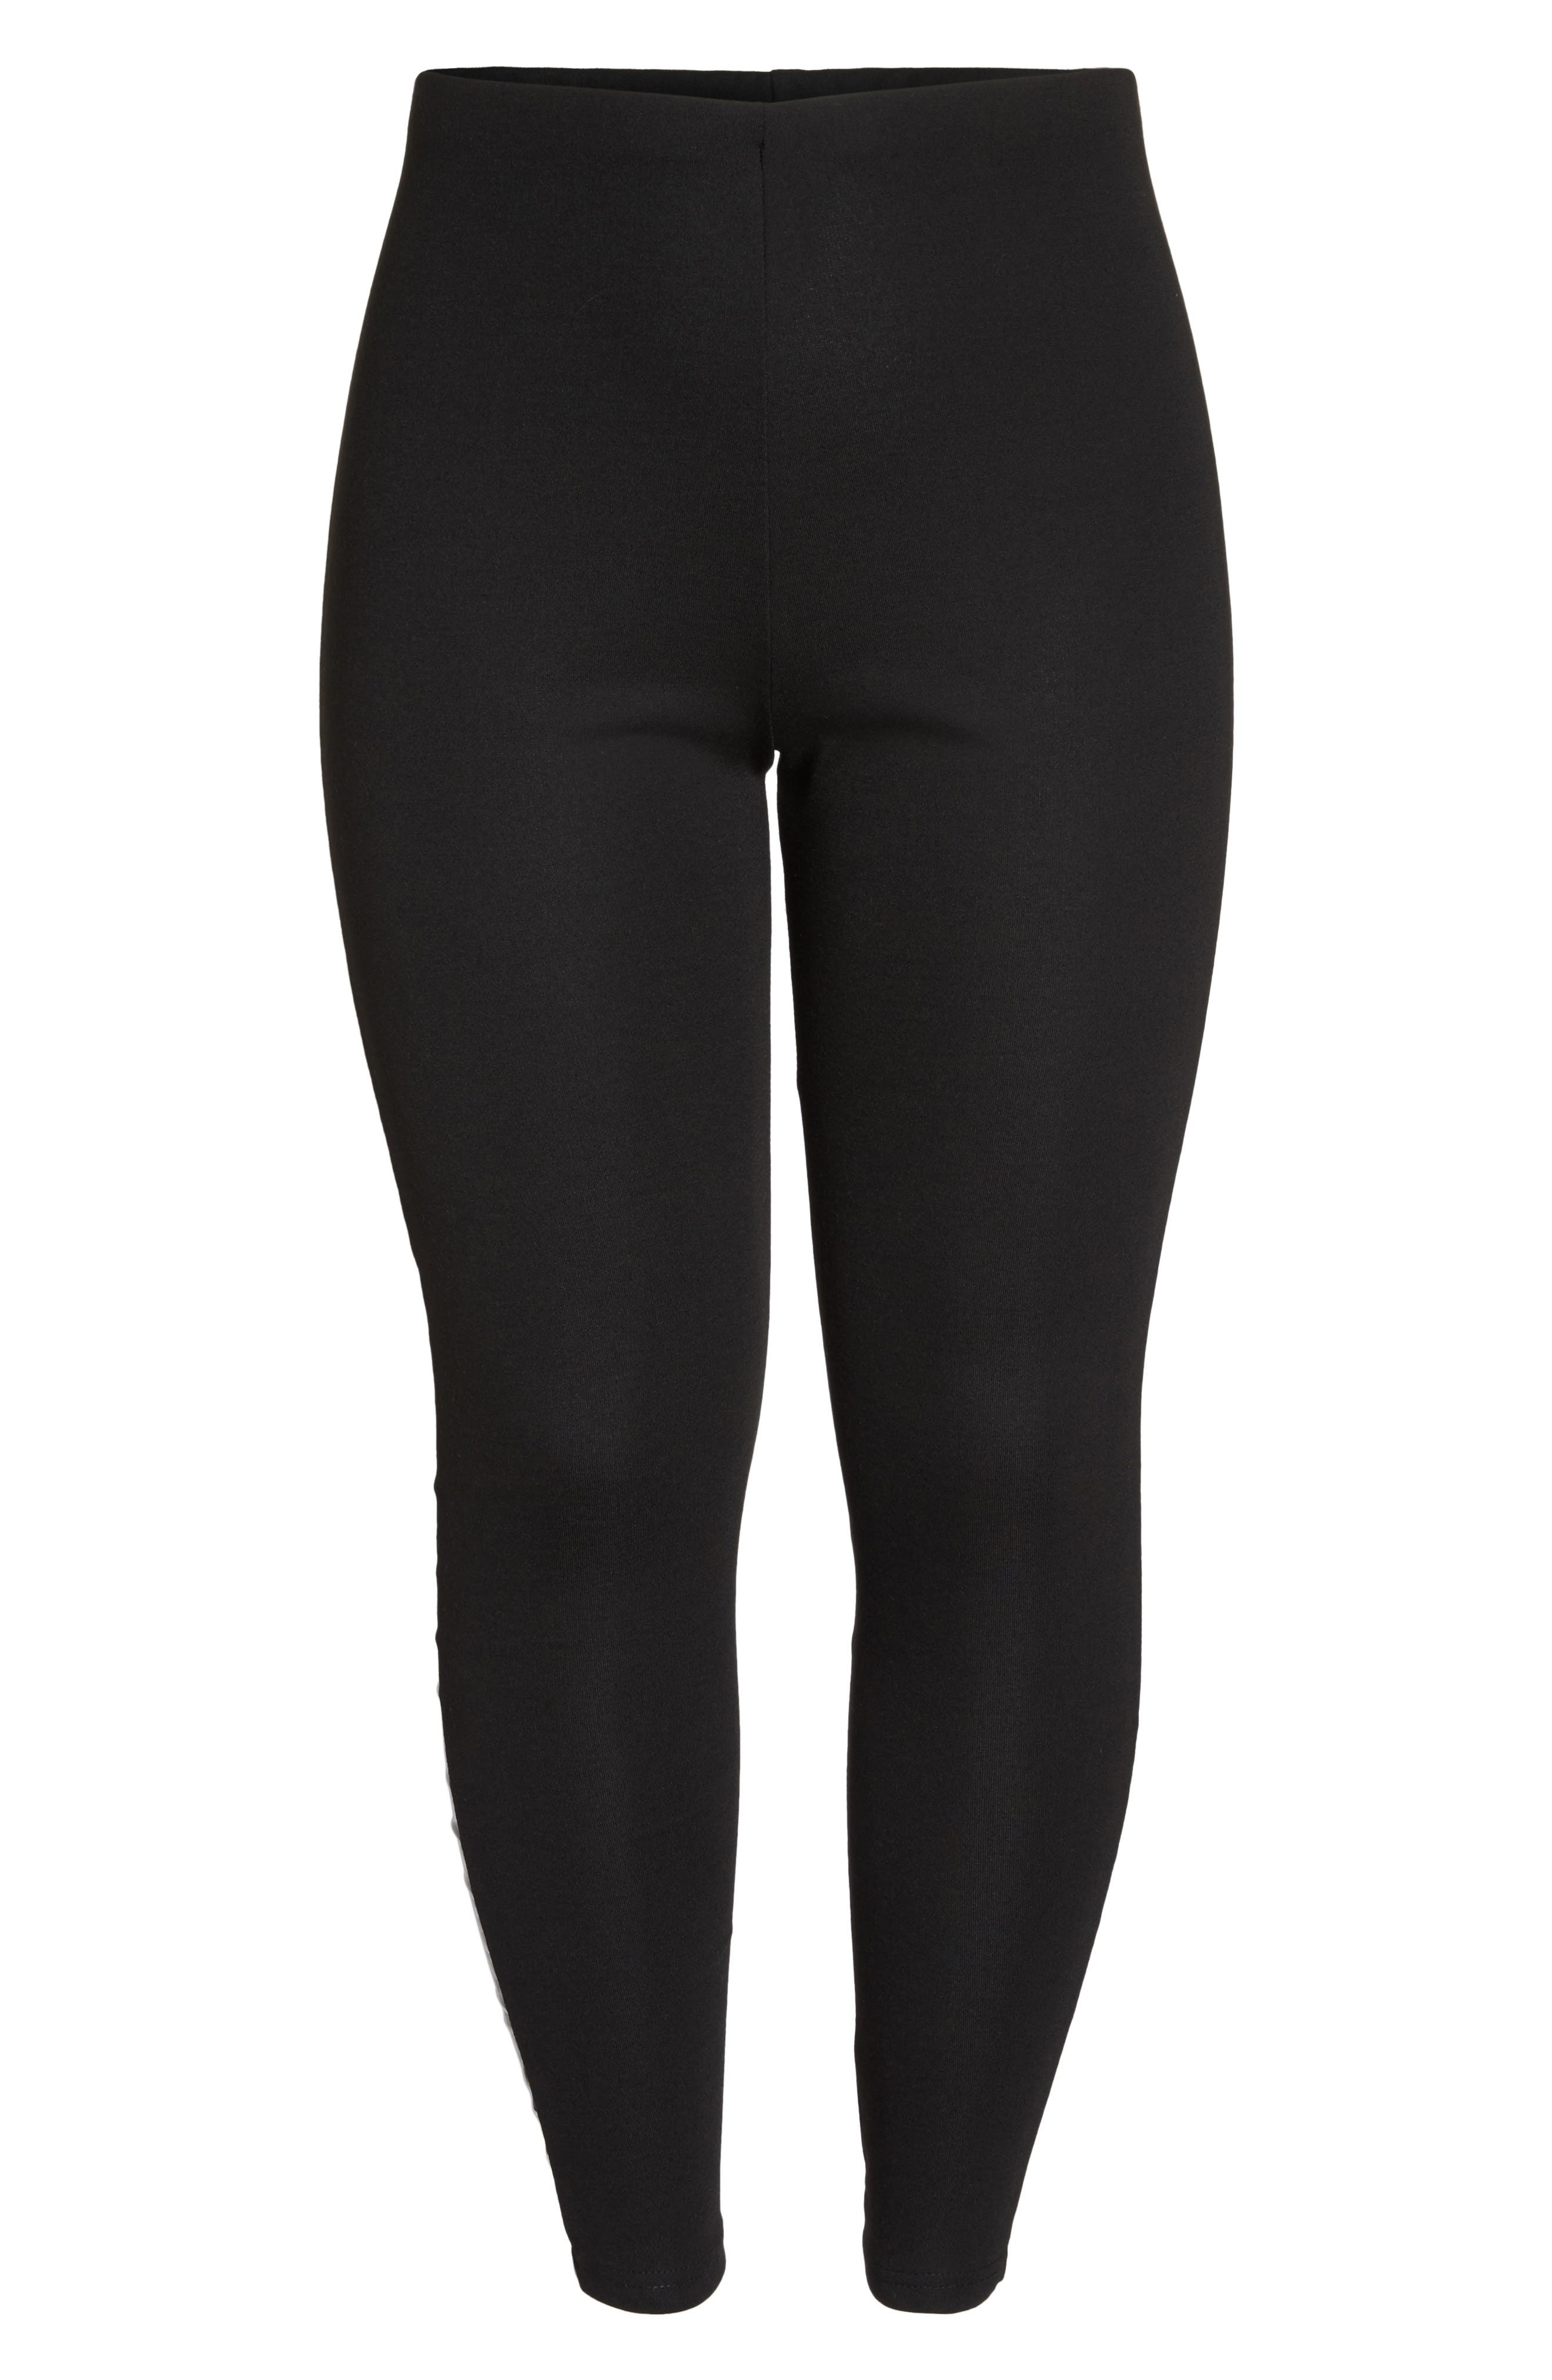 Skinny Pant with Vinyl Seam,                             Alternate thumbnail 6, color,                             Black